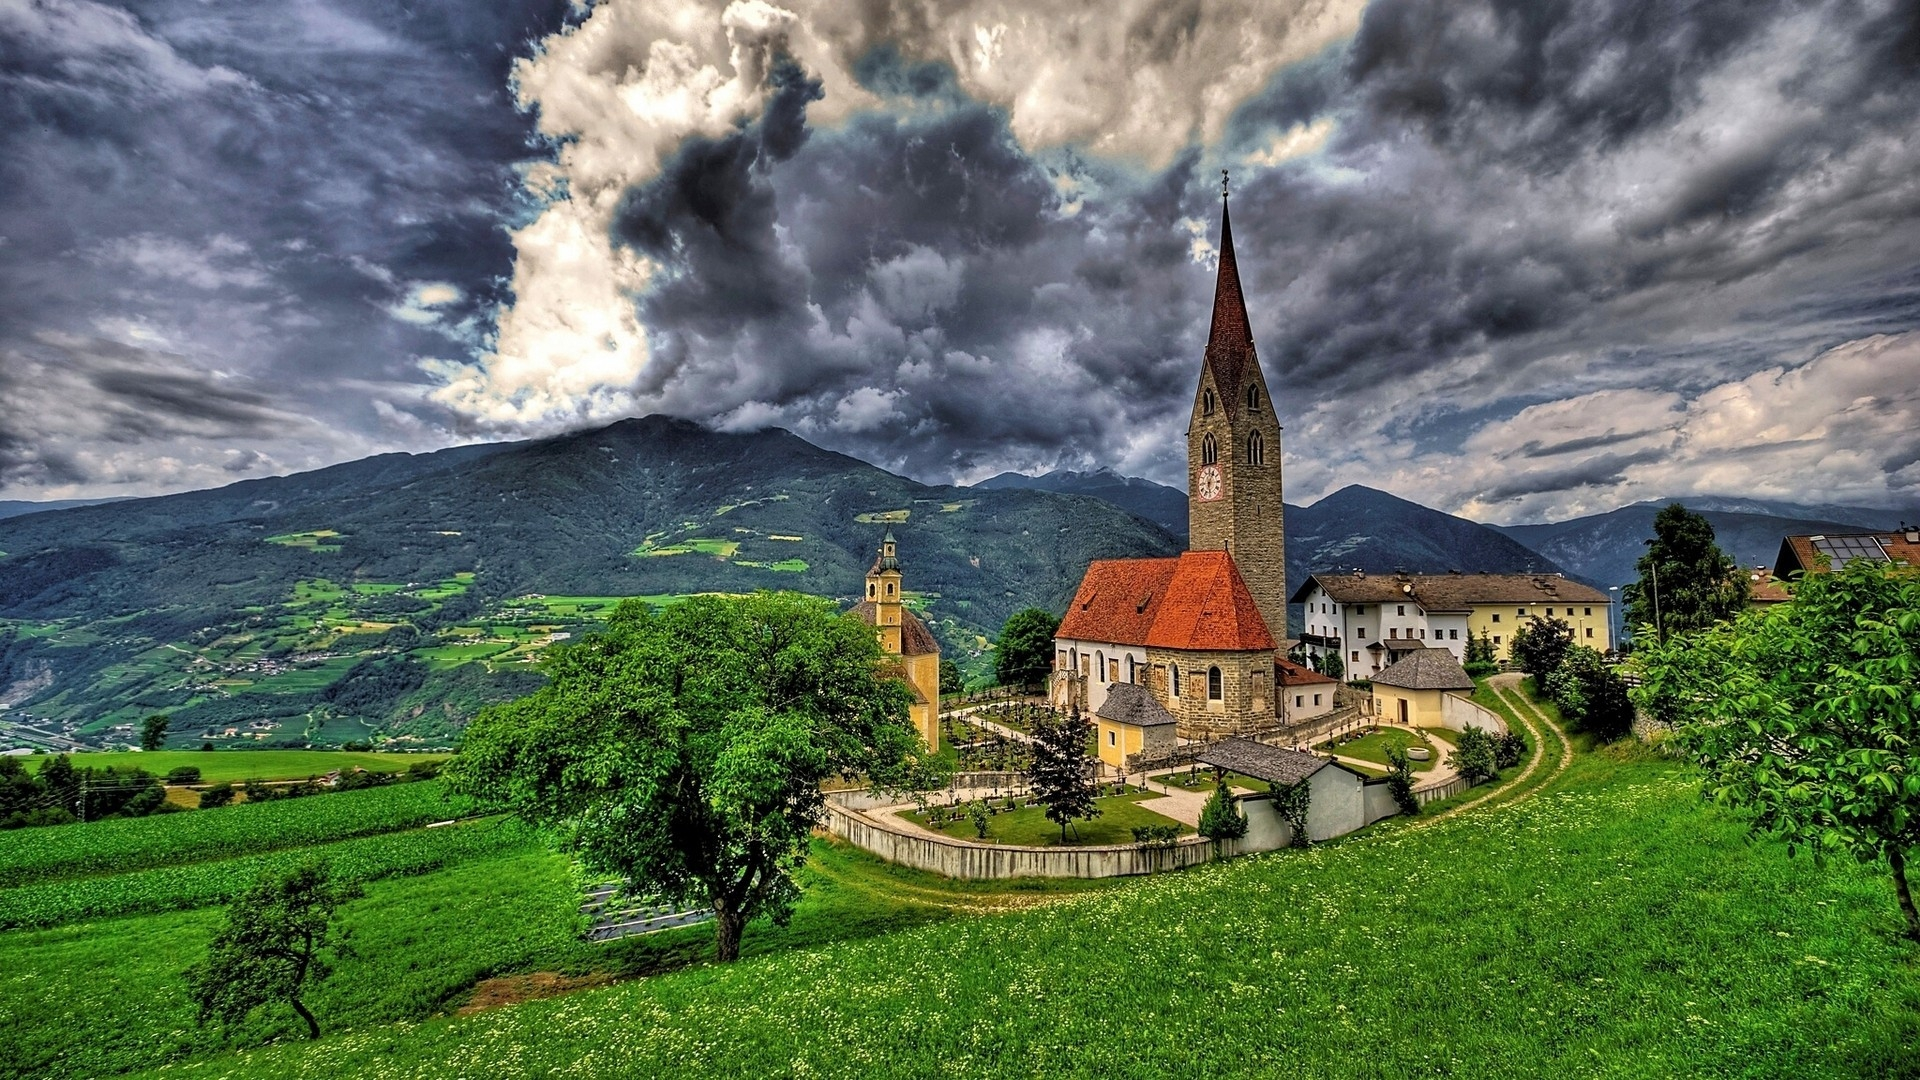 Saint Michael Church Brixen for 1920 x 1080 HDTV 1080p resolution